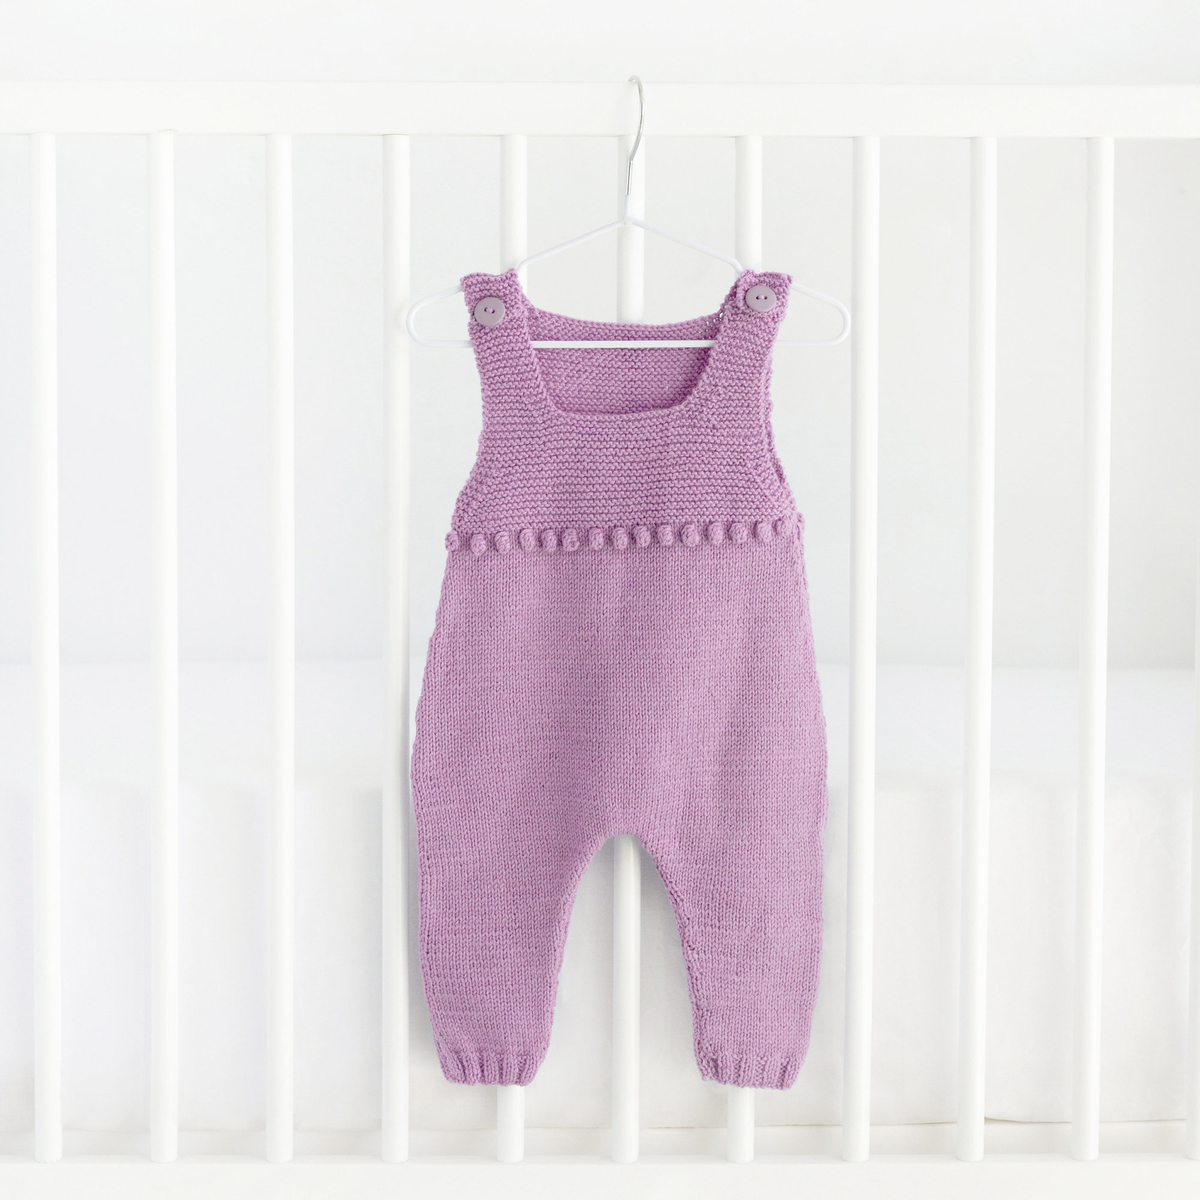 Knit a onesie with a bubble pattern